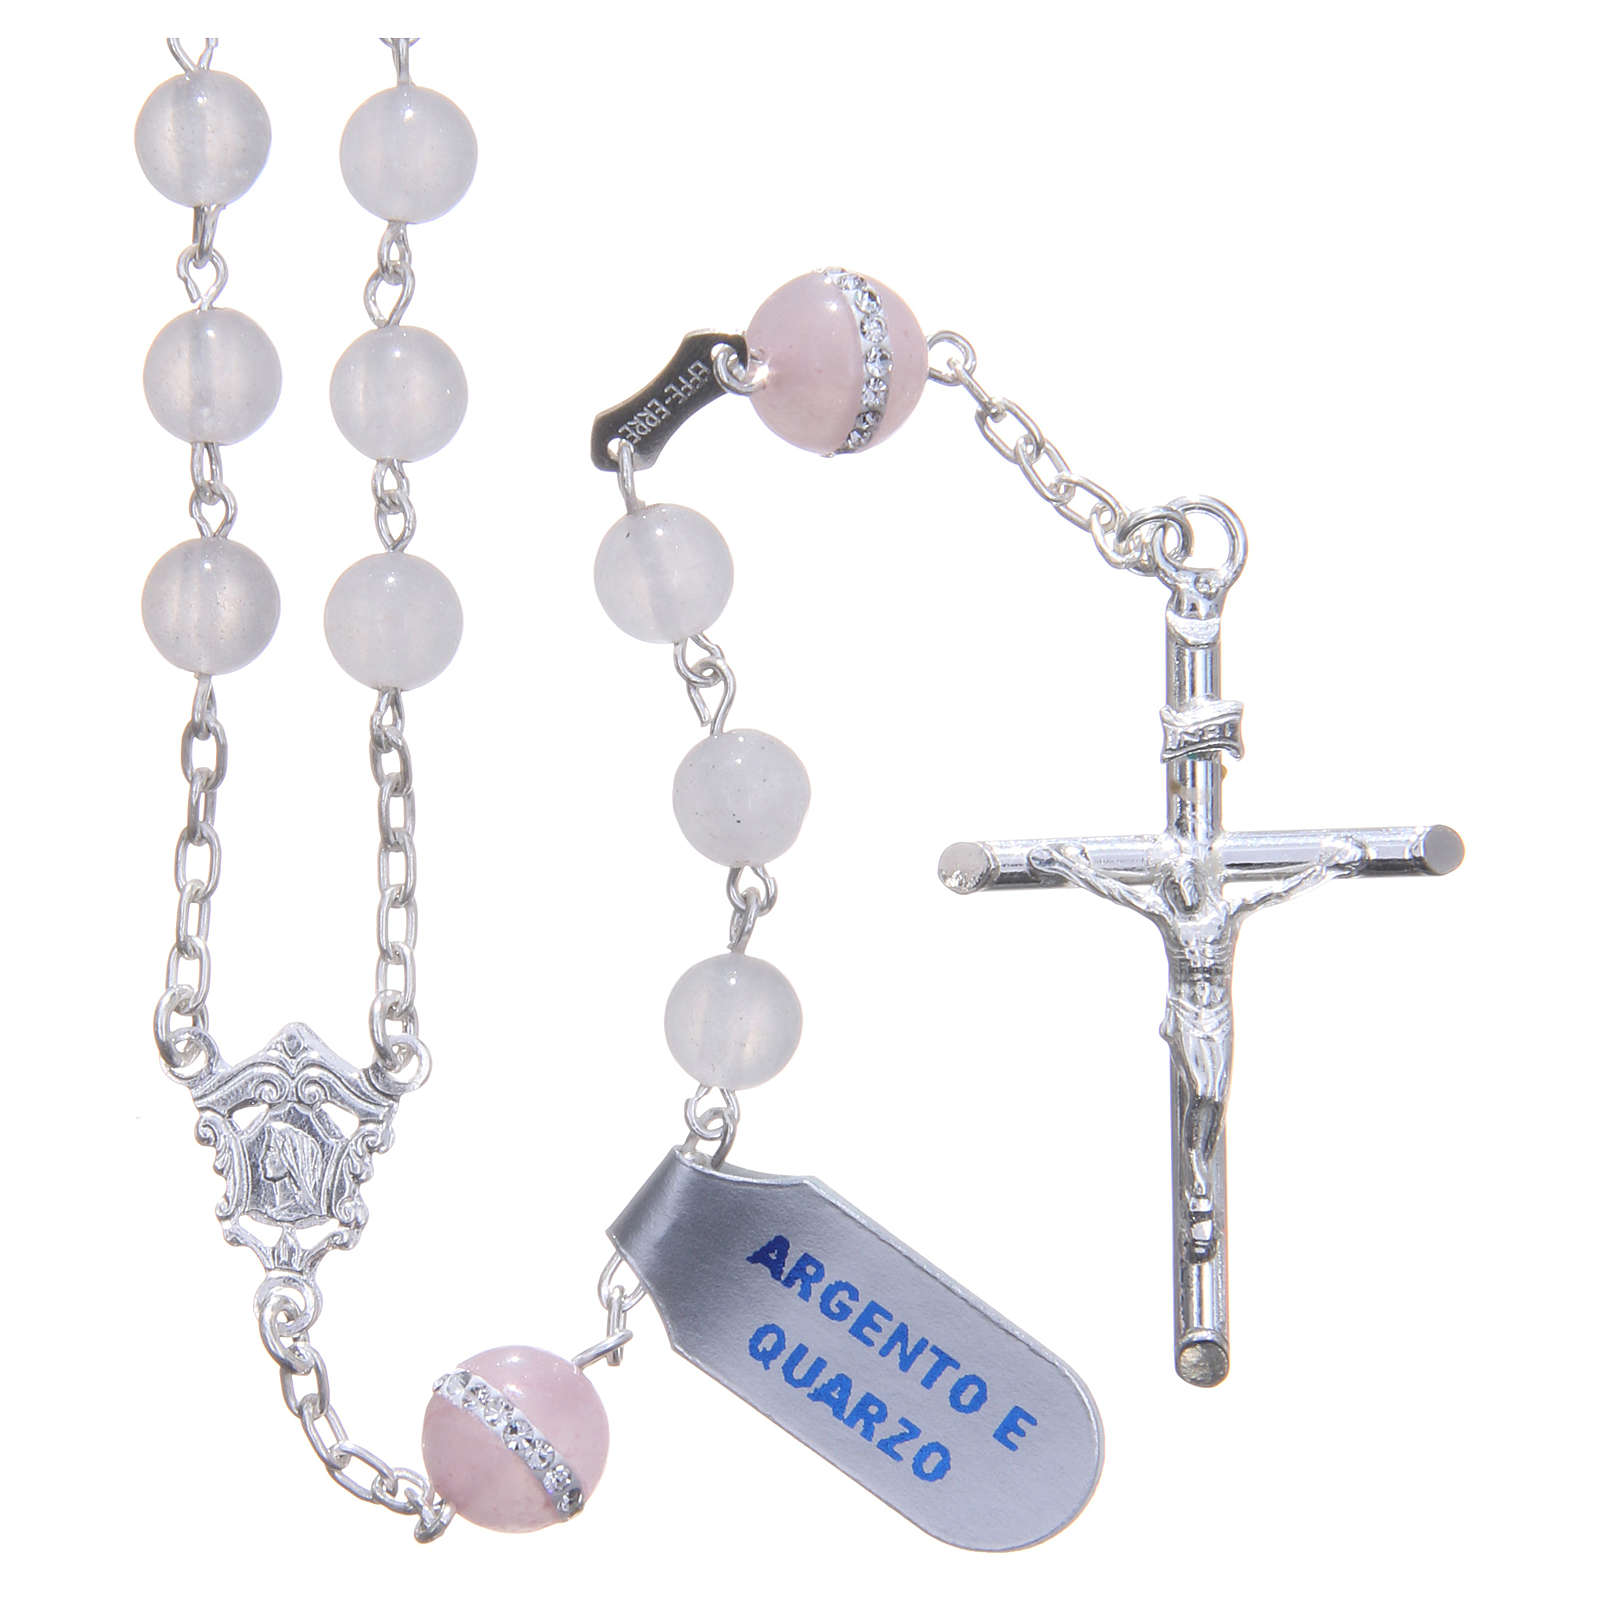 Rosary beads in 925 silver, with grains in rose quartz 4